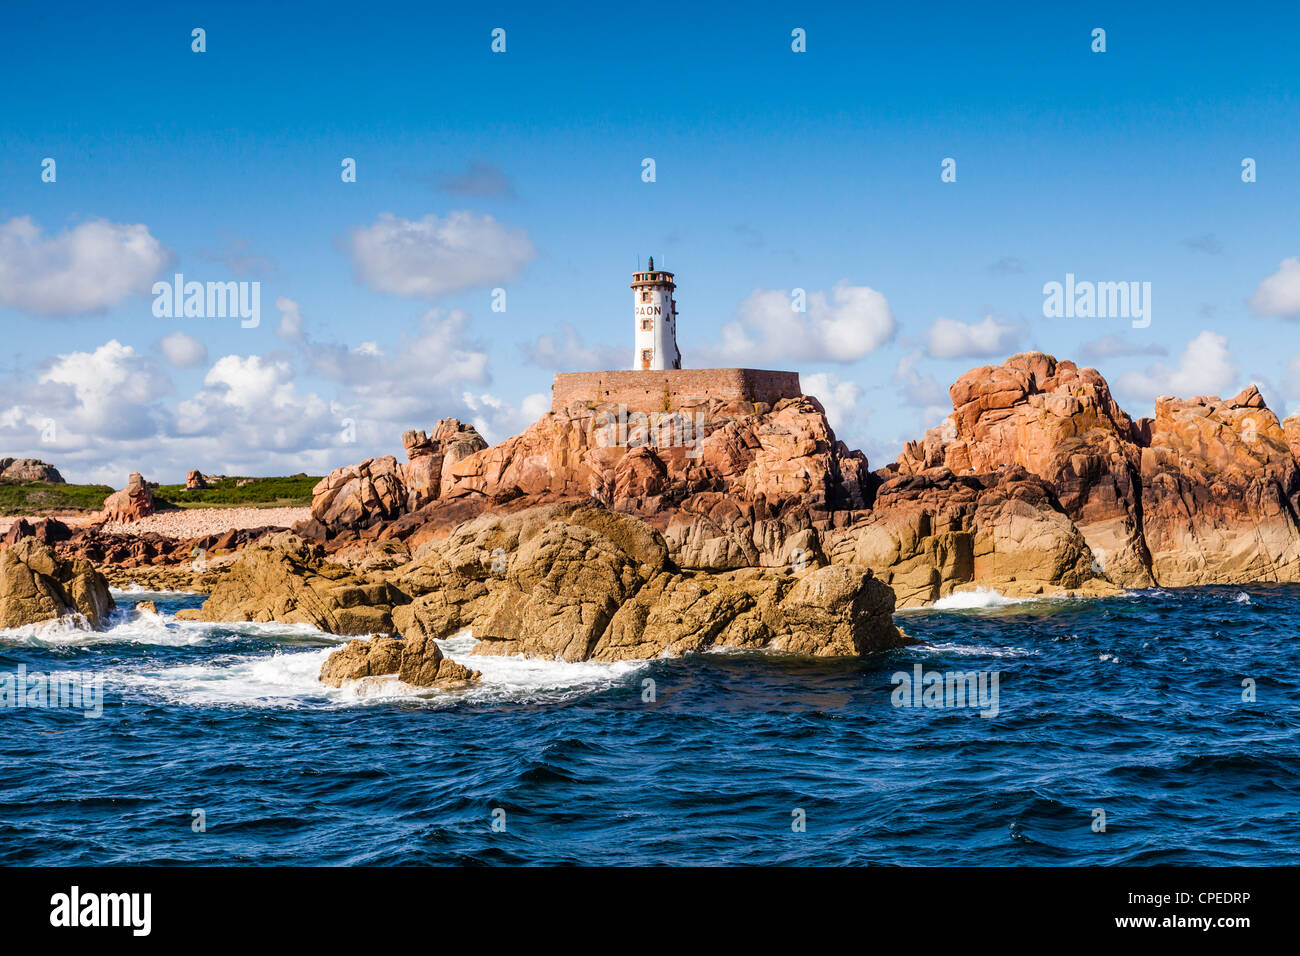 Lighthouse on the Île de Bréhat, on the Pink Granite Coast, Brittany, France, seen from the sea. - Stock Image